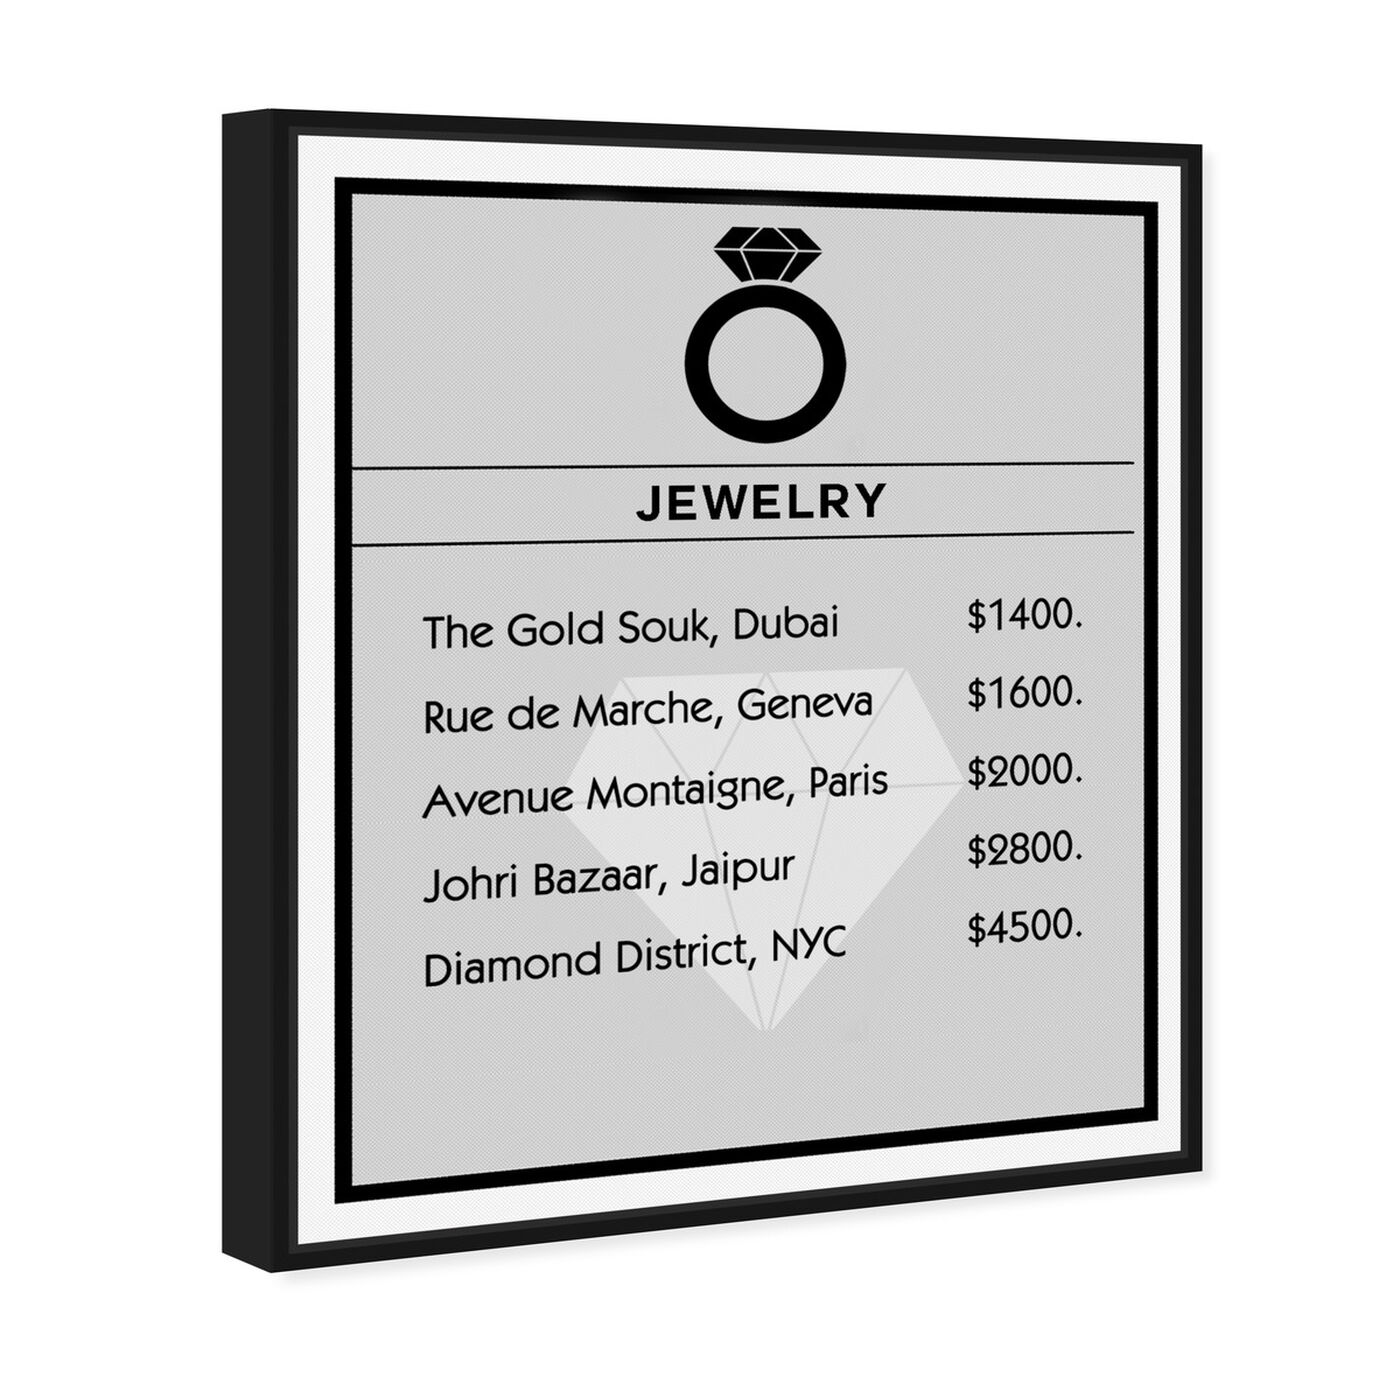 Angled view of Jewelry Card featuring entertainment and hobbies and jewelry art.